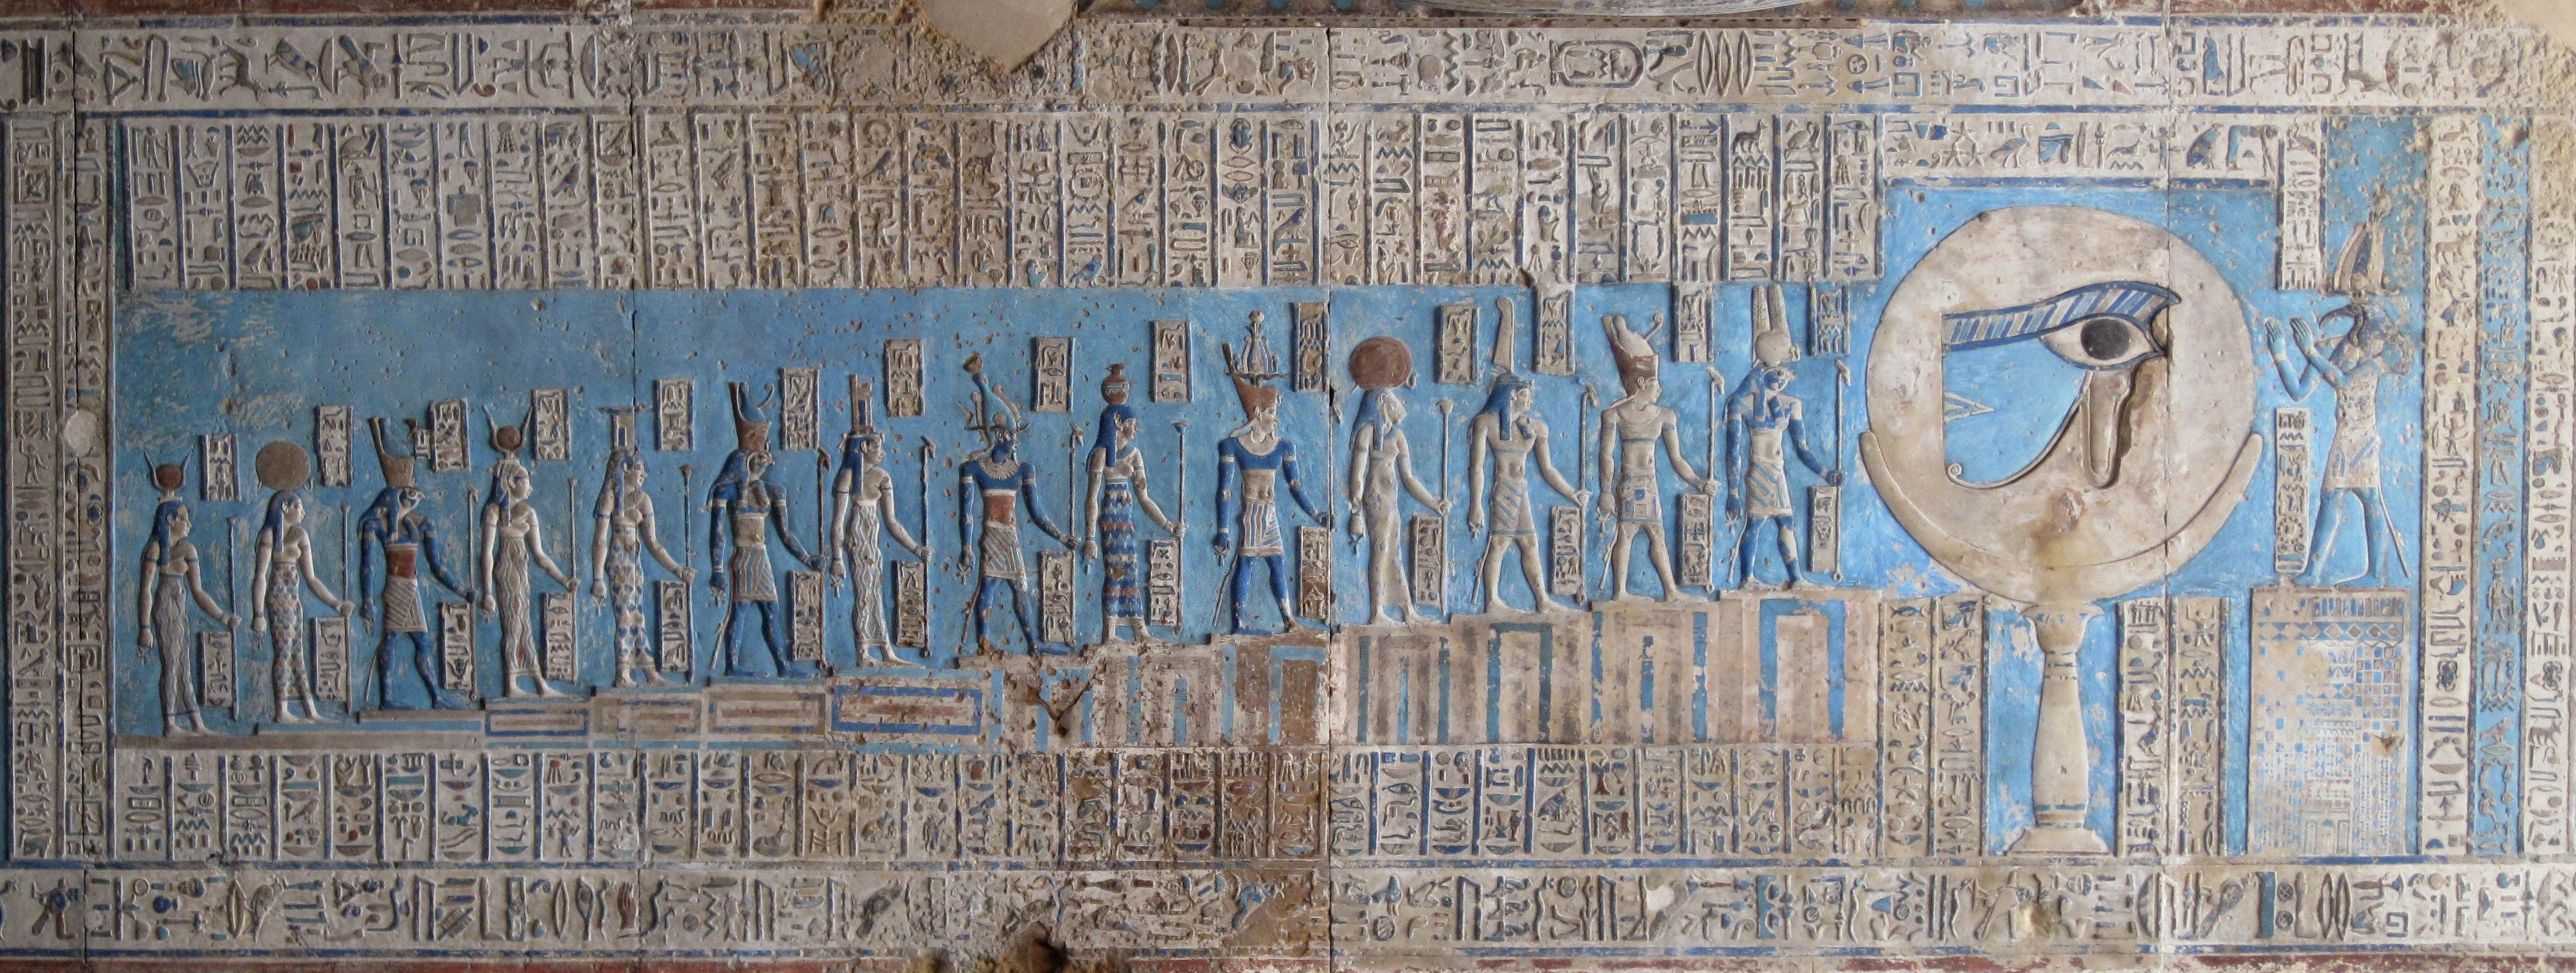 The Temple of Dendera